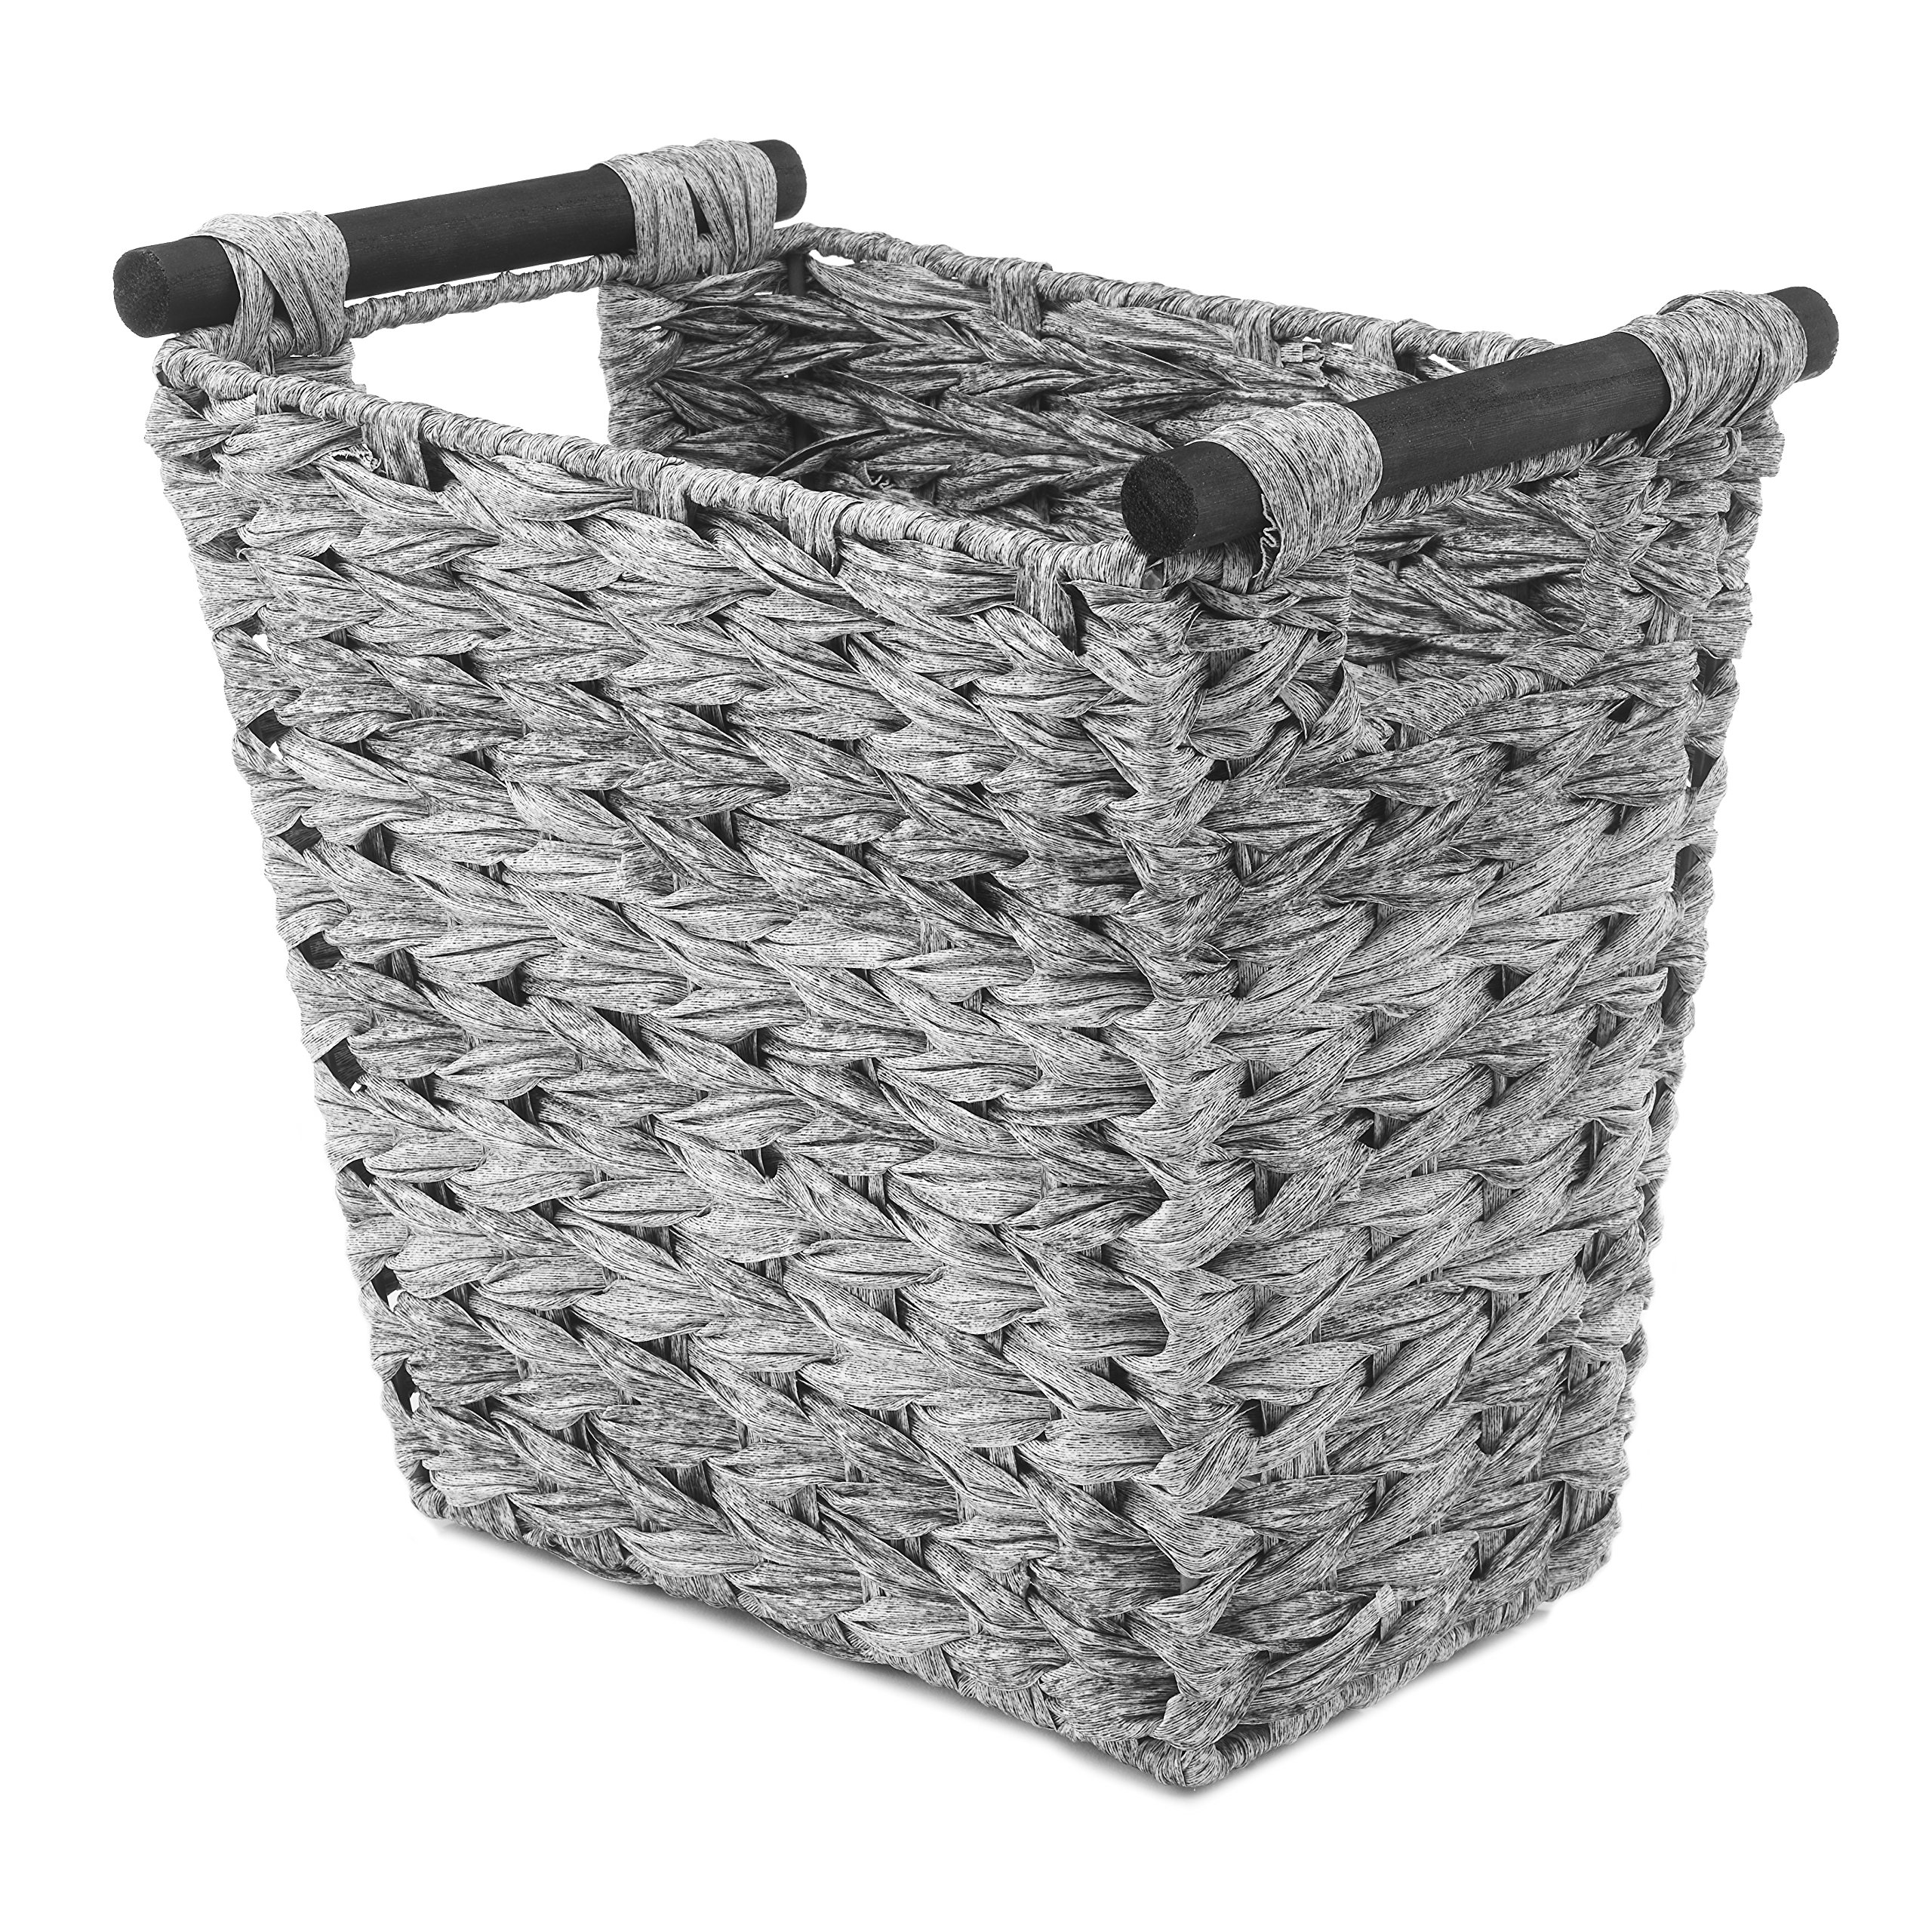 Whitmor Split Rattique Waste Basket with Wood Handles - Gray Wash by Whitmor